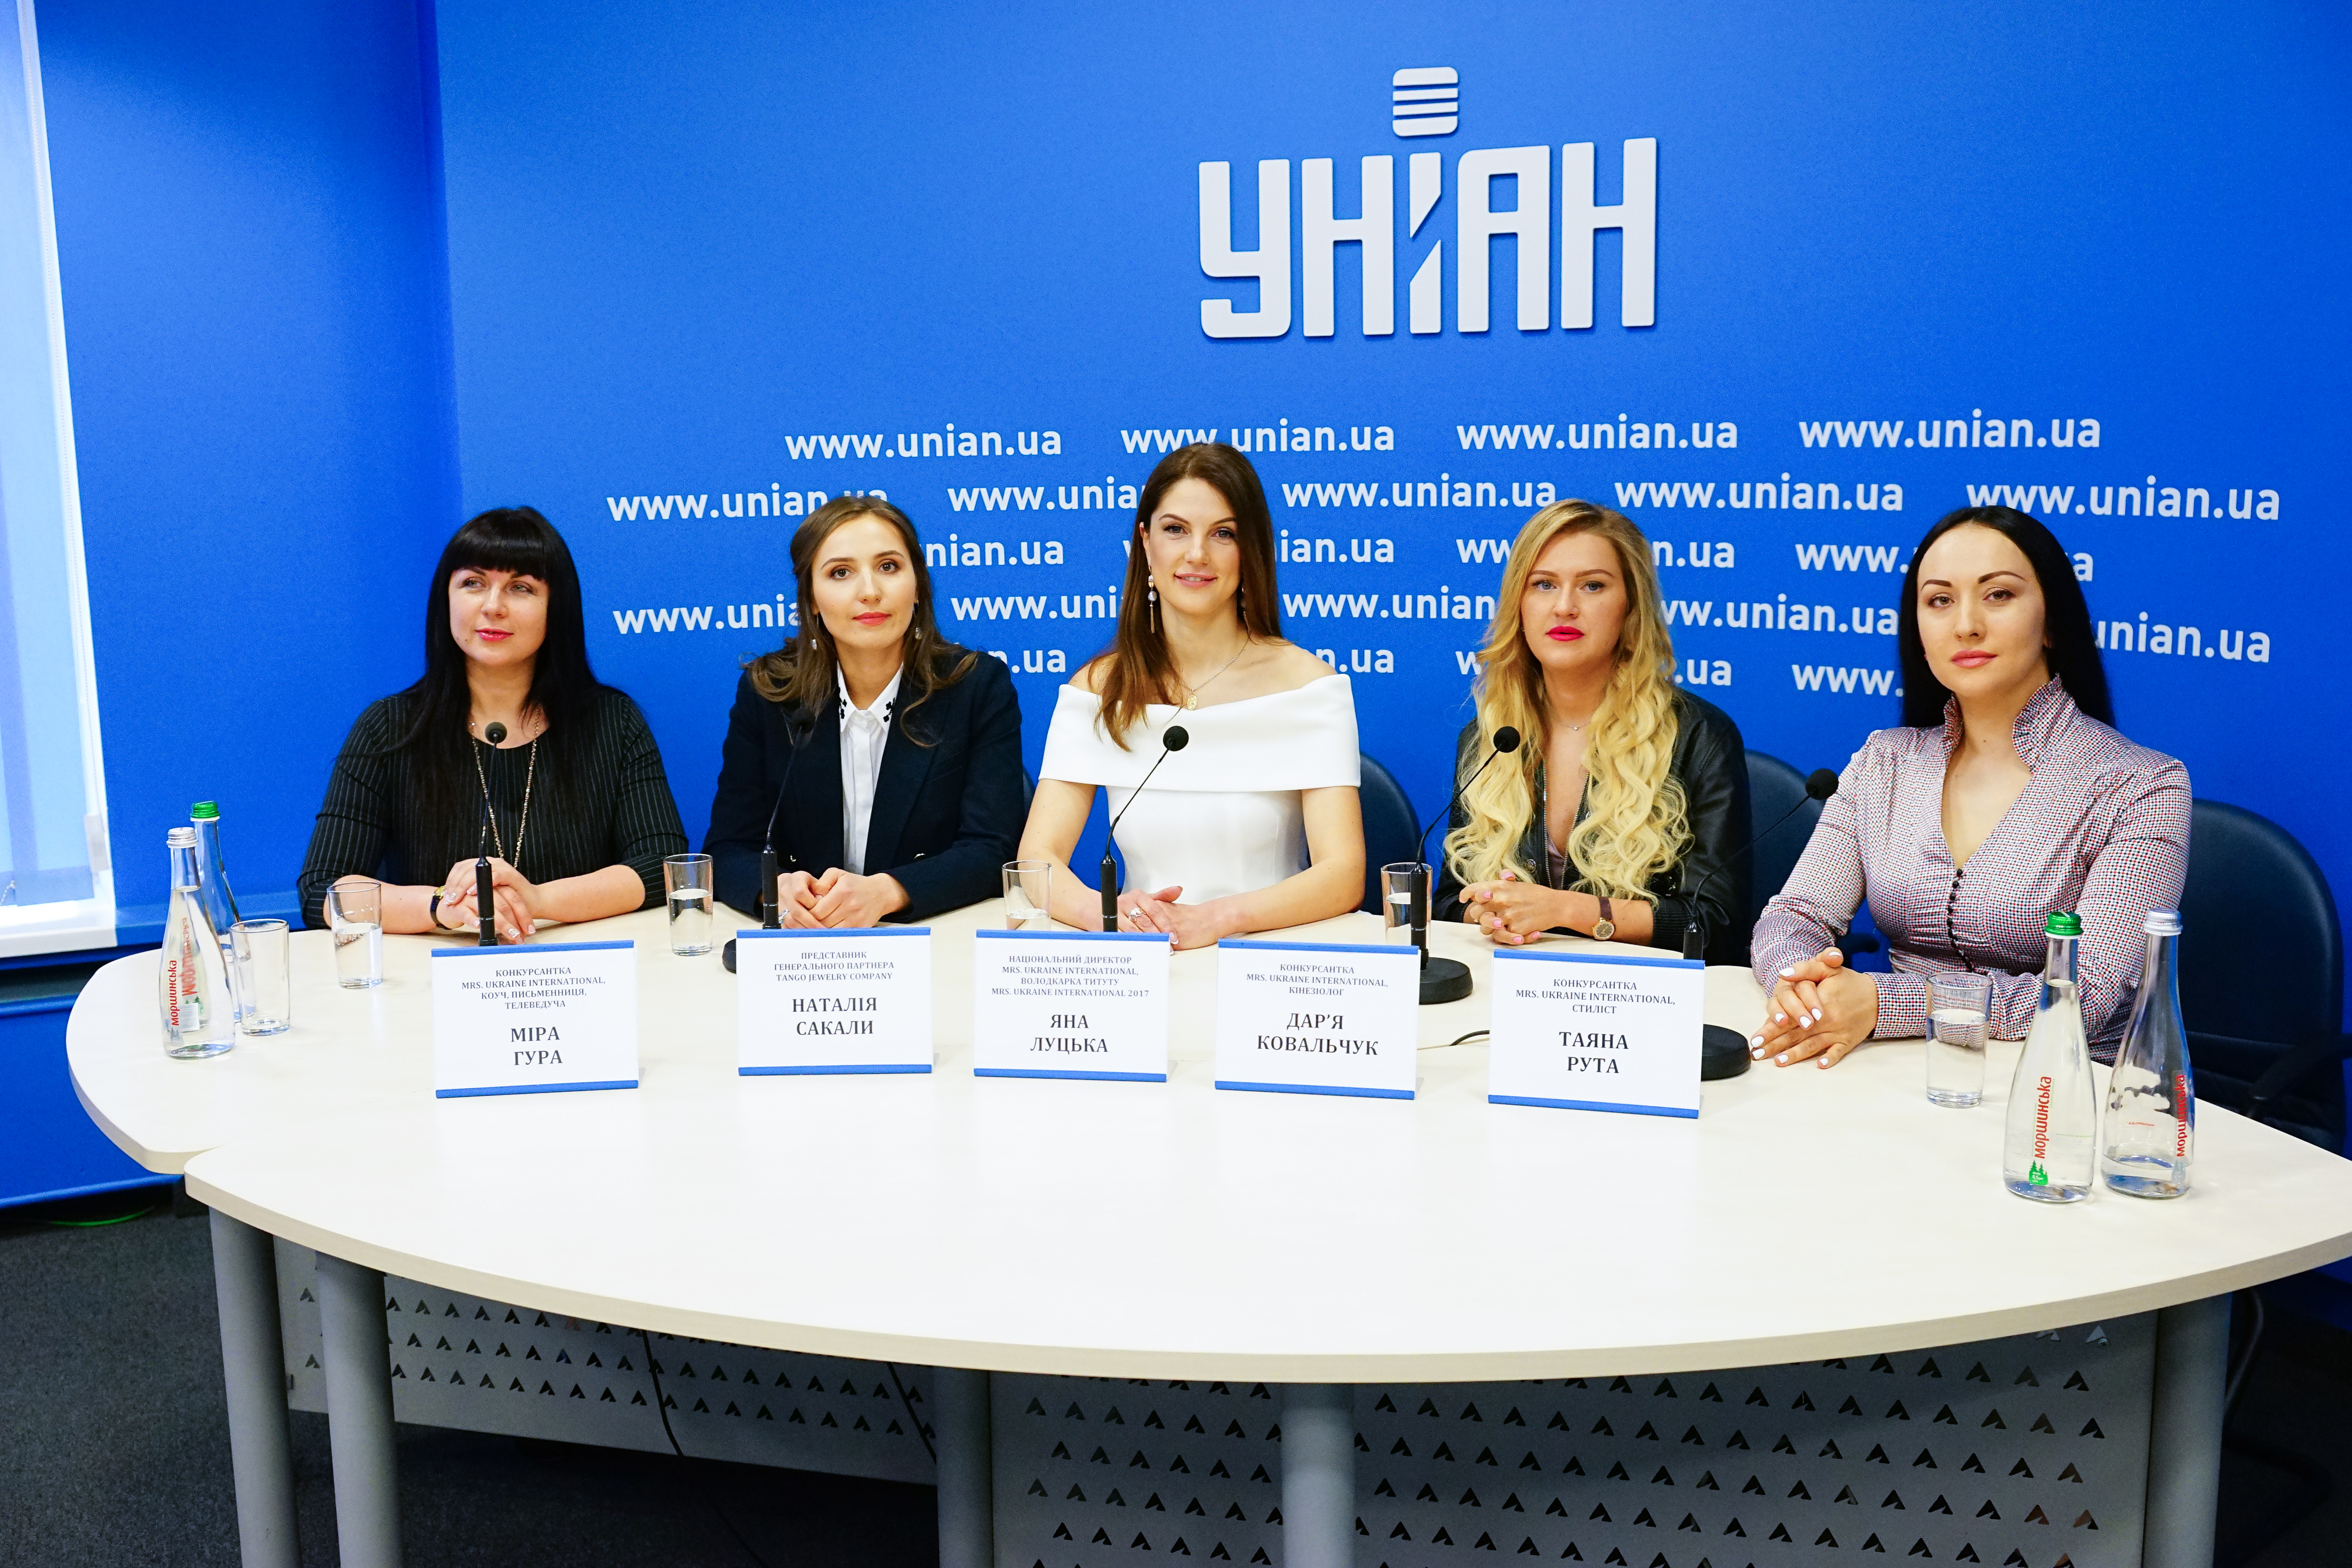 Mrs. Ukraine International | PRESS-CONFERENCE AT UNIAN (VIDEO)